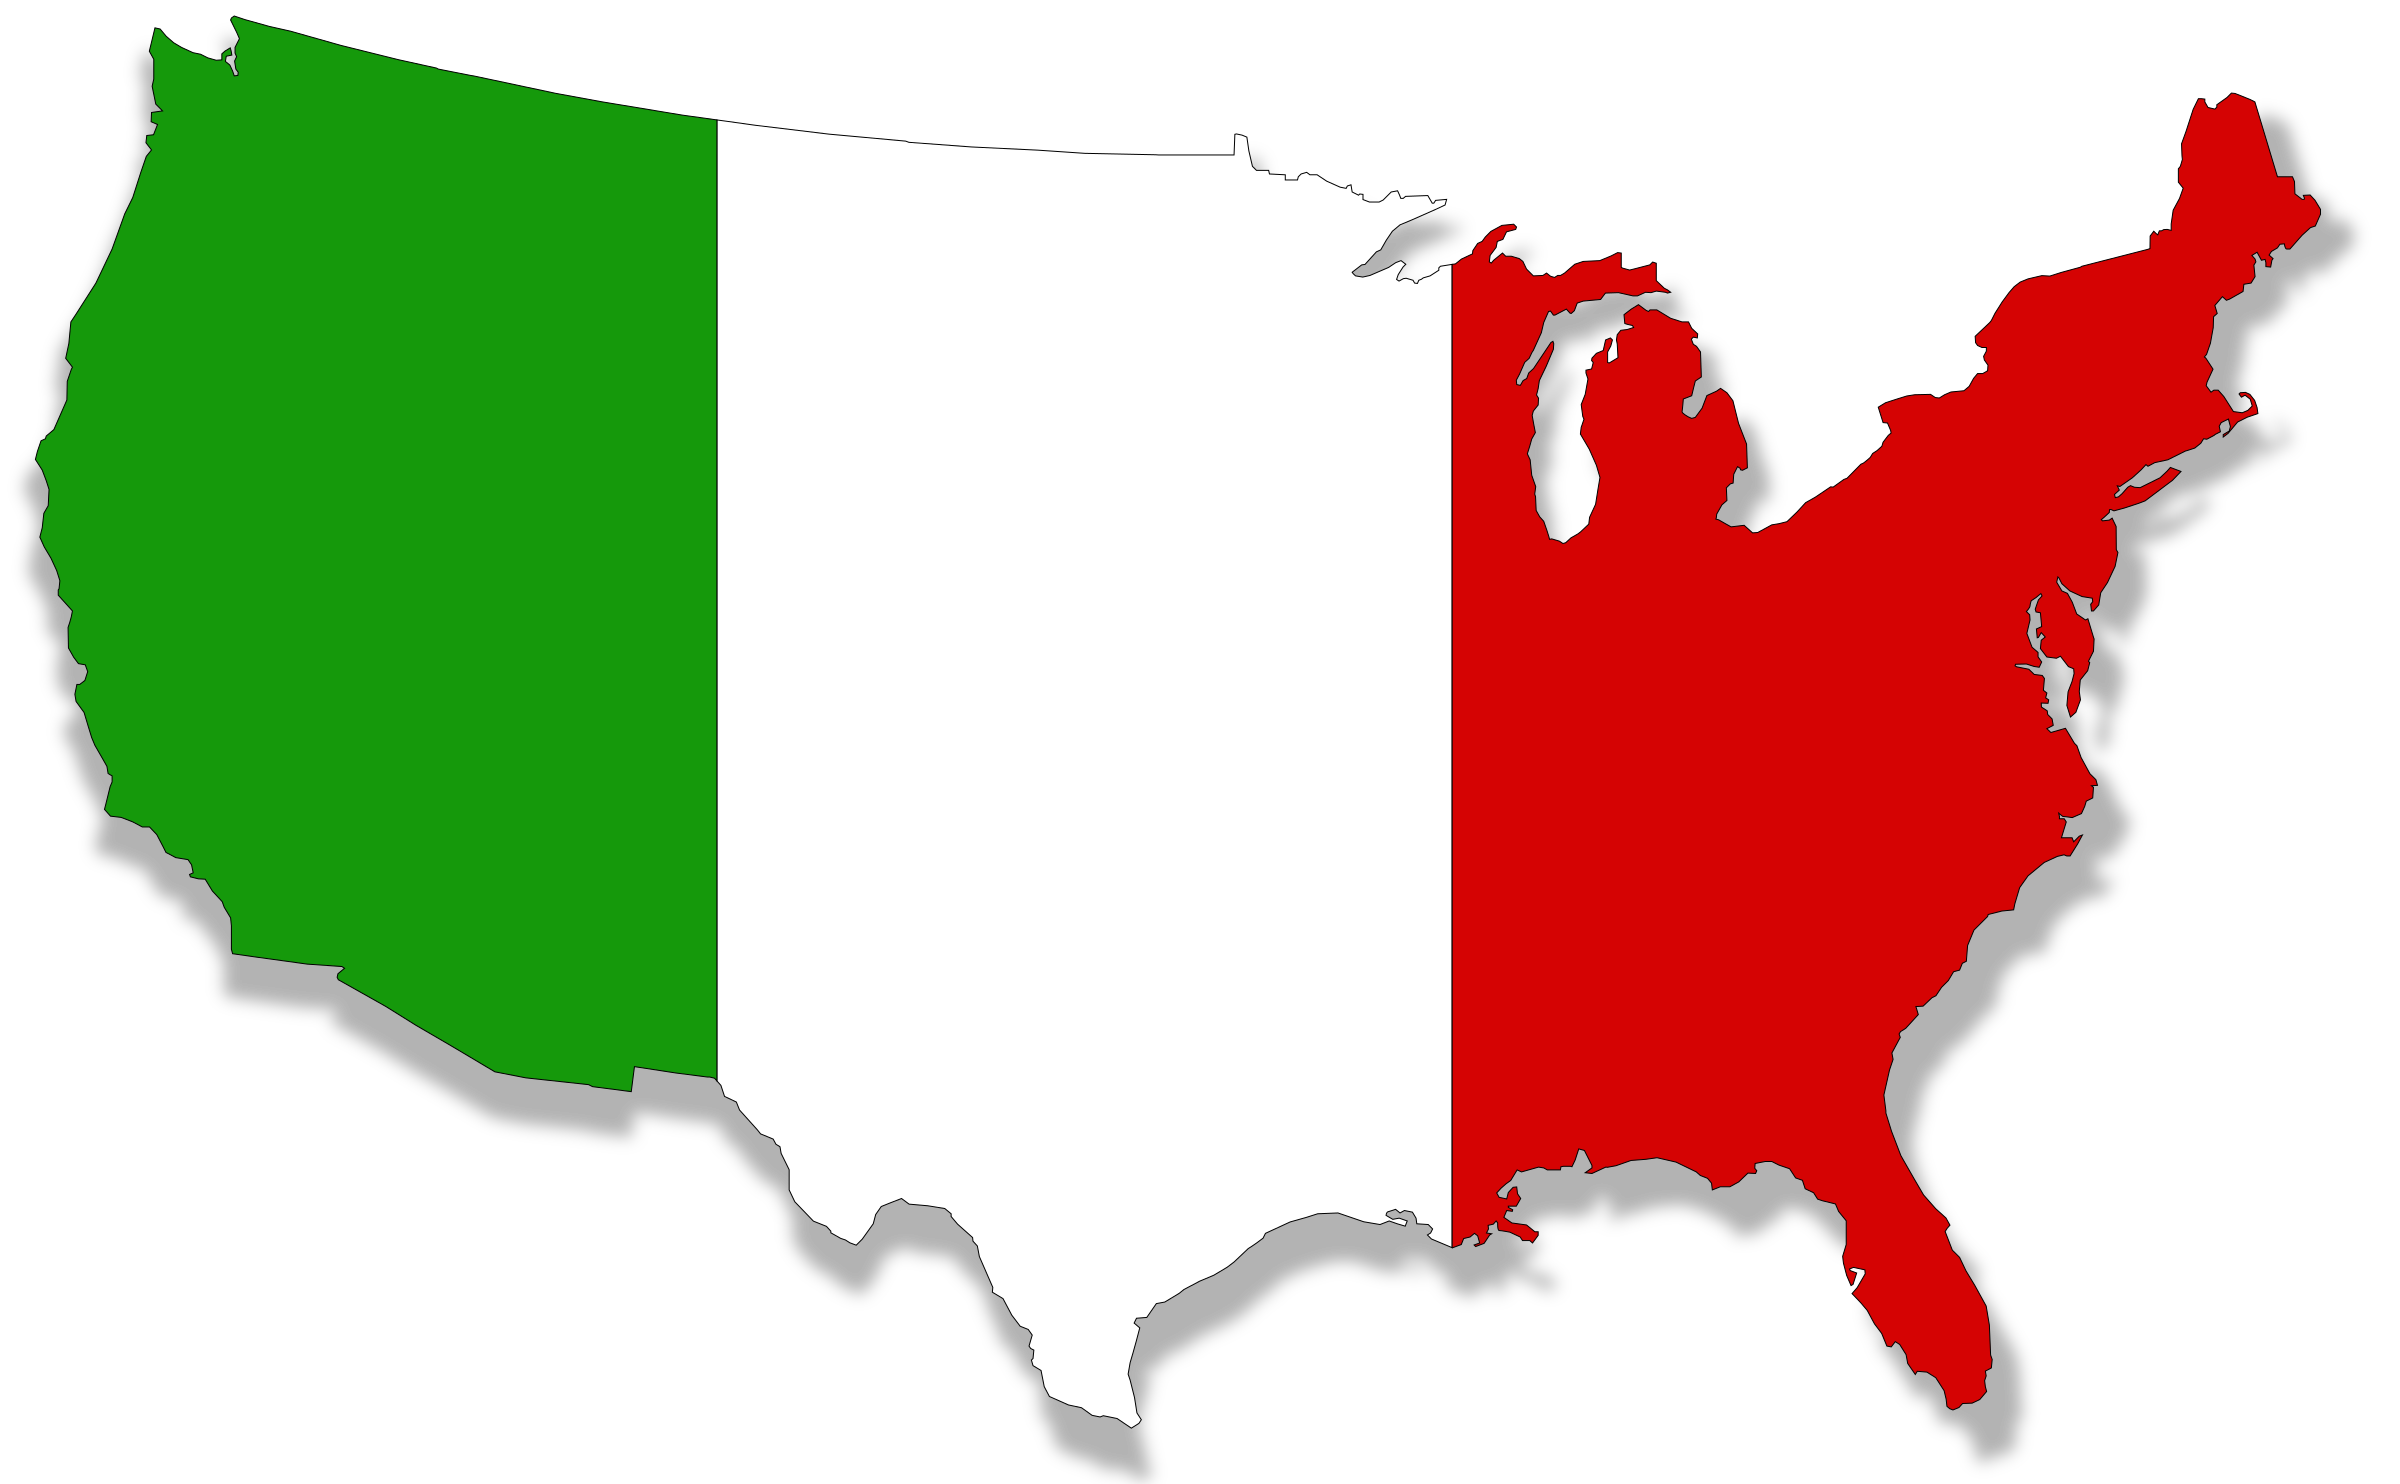 Us map clipart banner black and white United States Silhouette Clip art - italy 2400*1484 transprent Png ... banner black and white